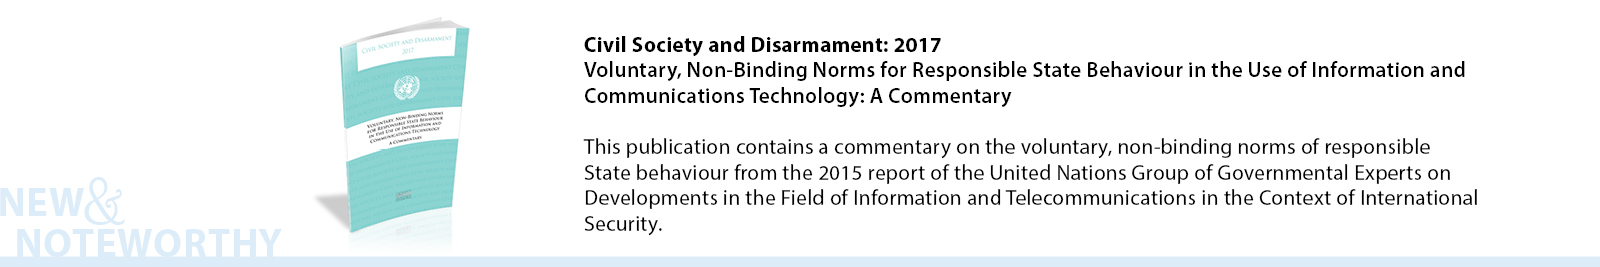 Civil Society and Disarmament: 2017 - Voluntary, Non-Binding Norms for Responsible State Behaviour in the Use of Information and Communications Technology: A Commentary - This publication contains a commentary on the voluntary, non-binding norms of responsible State behaviour from the 2015 report of the United Nations Group of Governmental Experts on Developments in the Field of Information and Telecommunications in the Context of International Security.